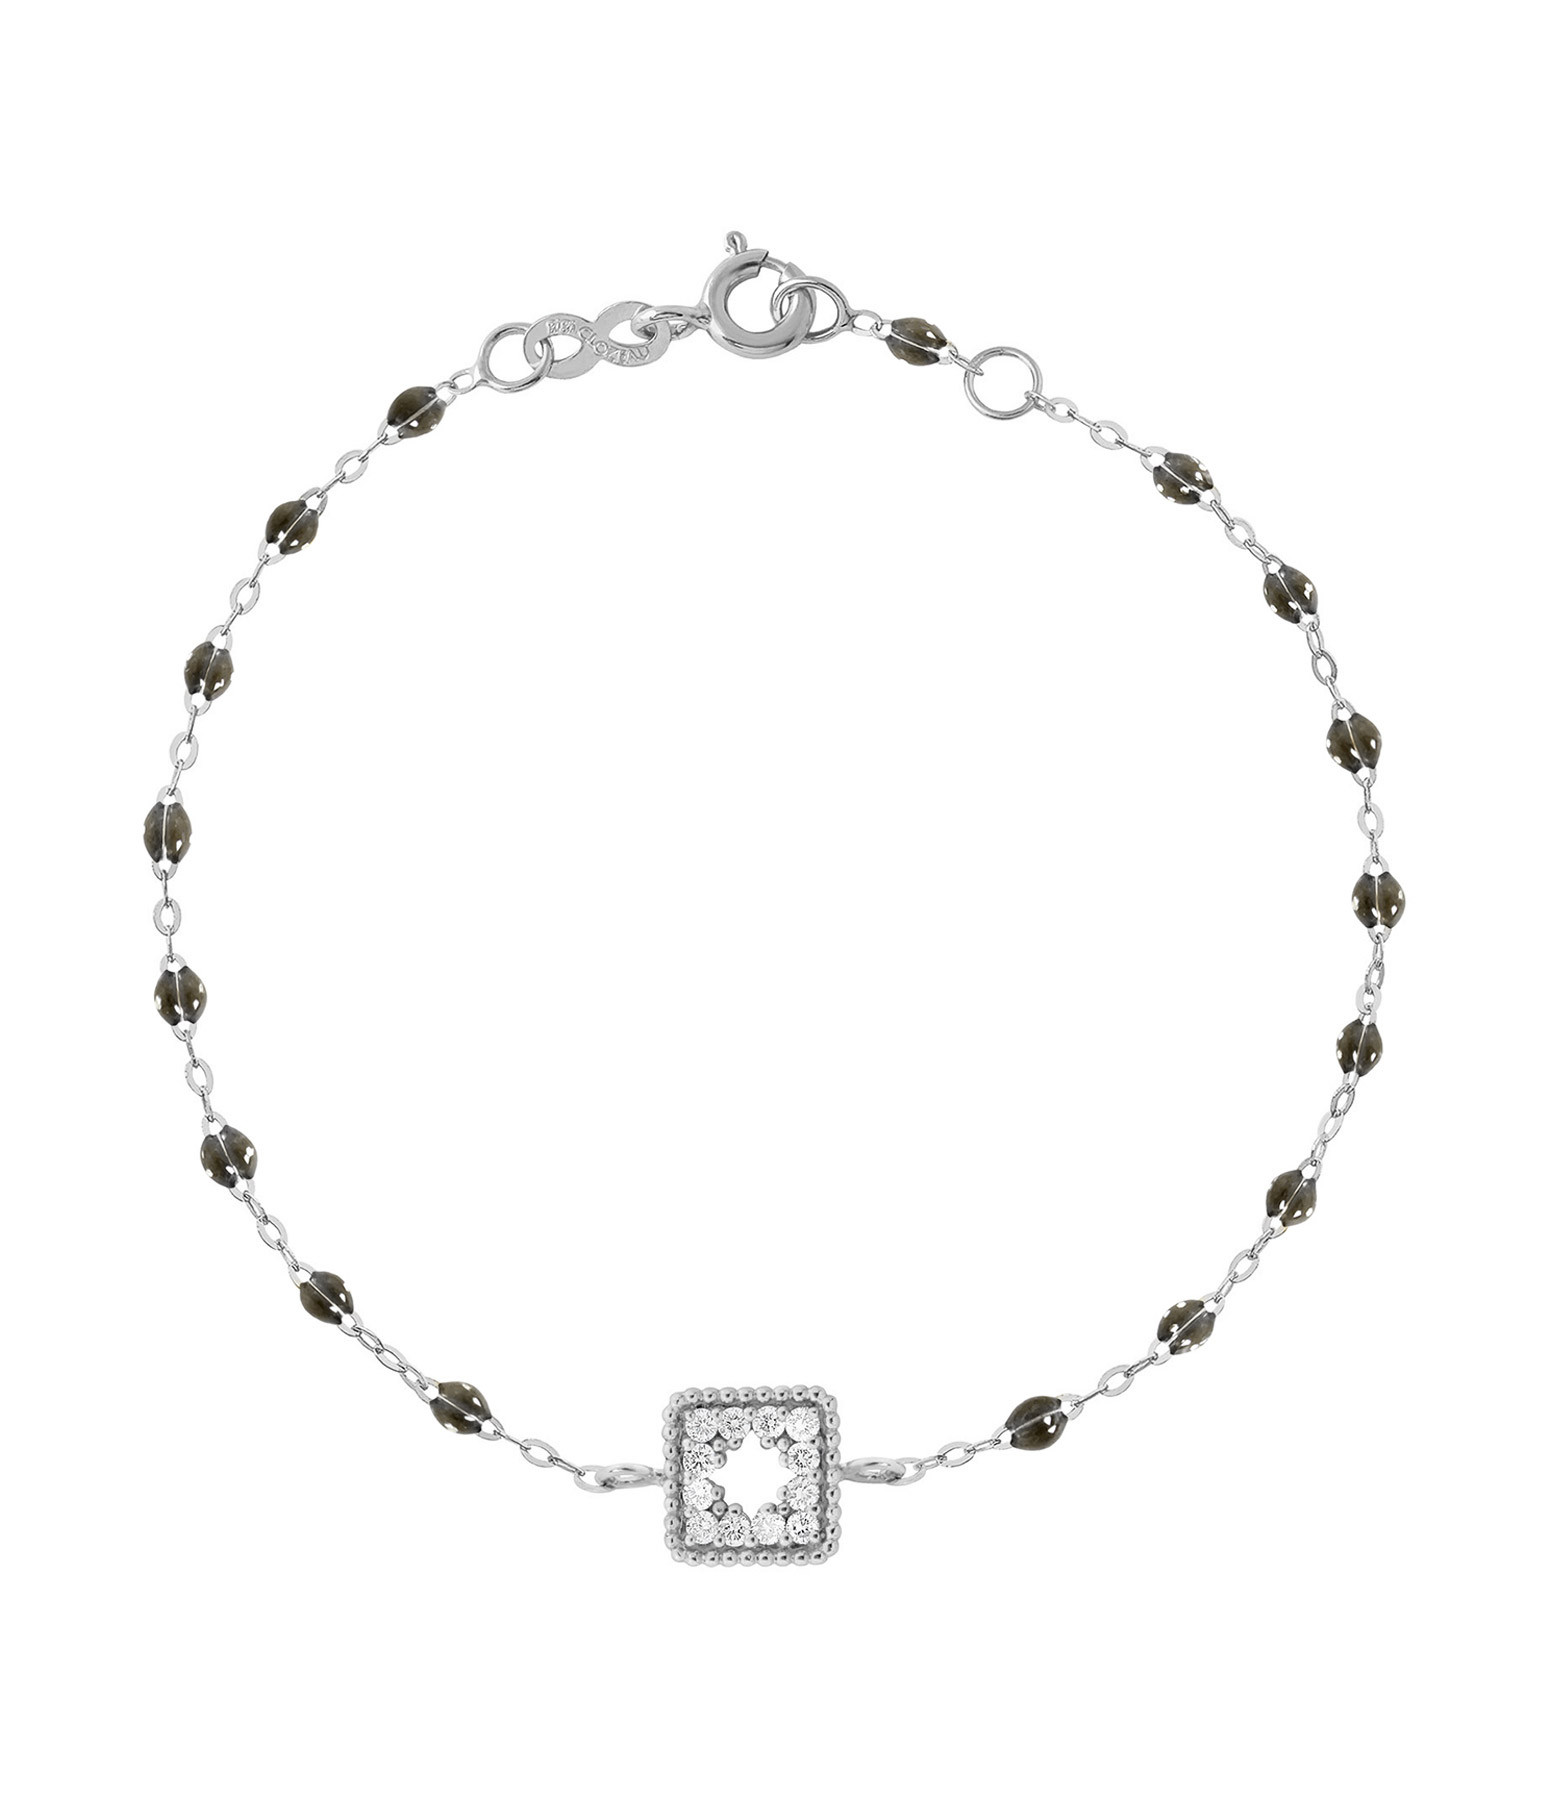 GIGI CLOZEAU - Bracelet résine Pirate Trésor Diams Or gris